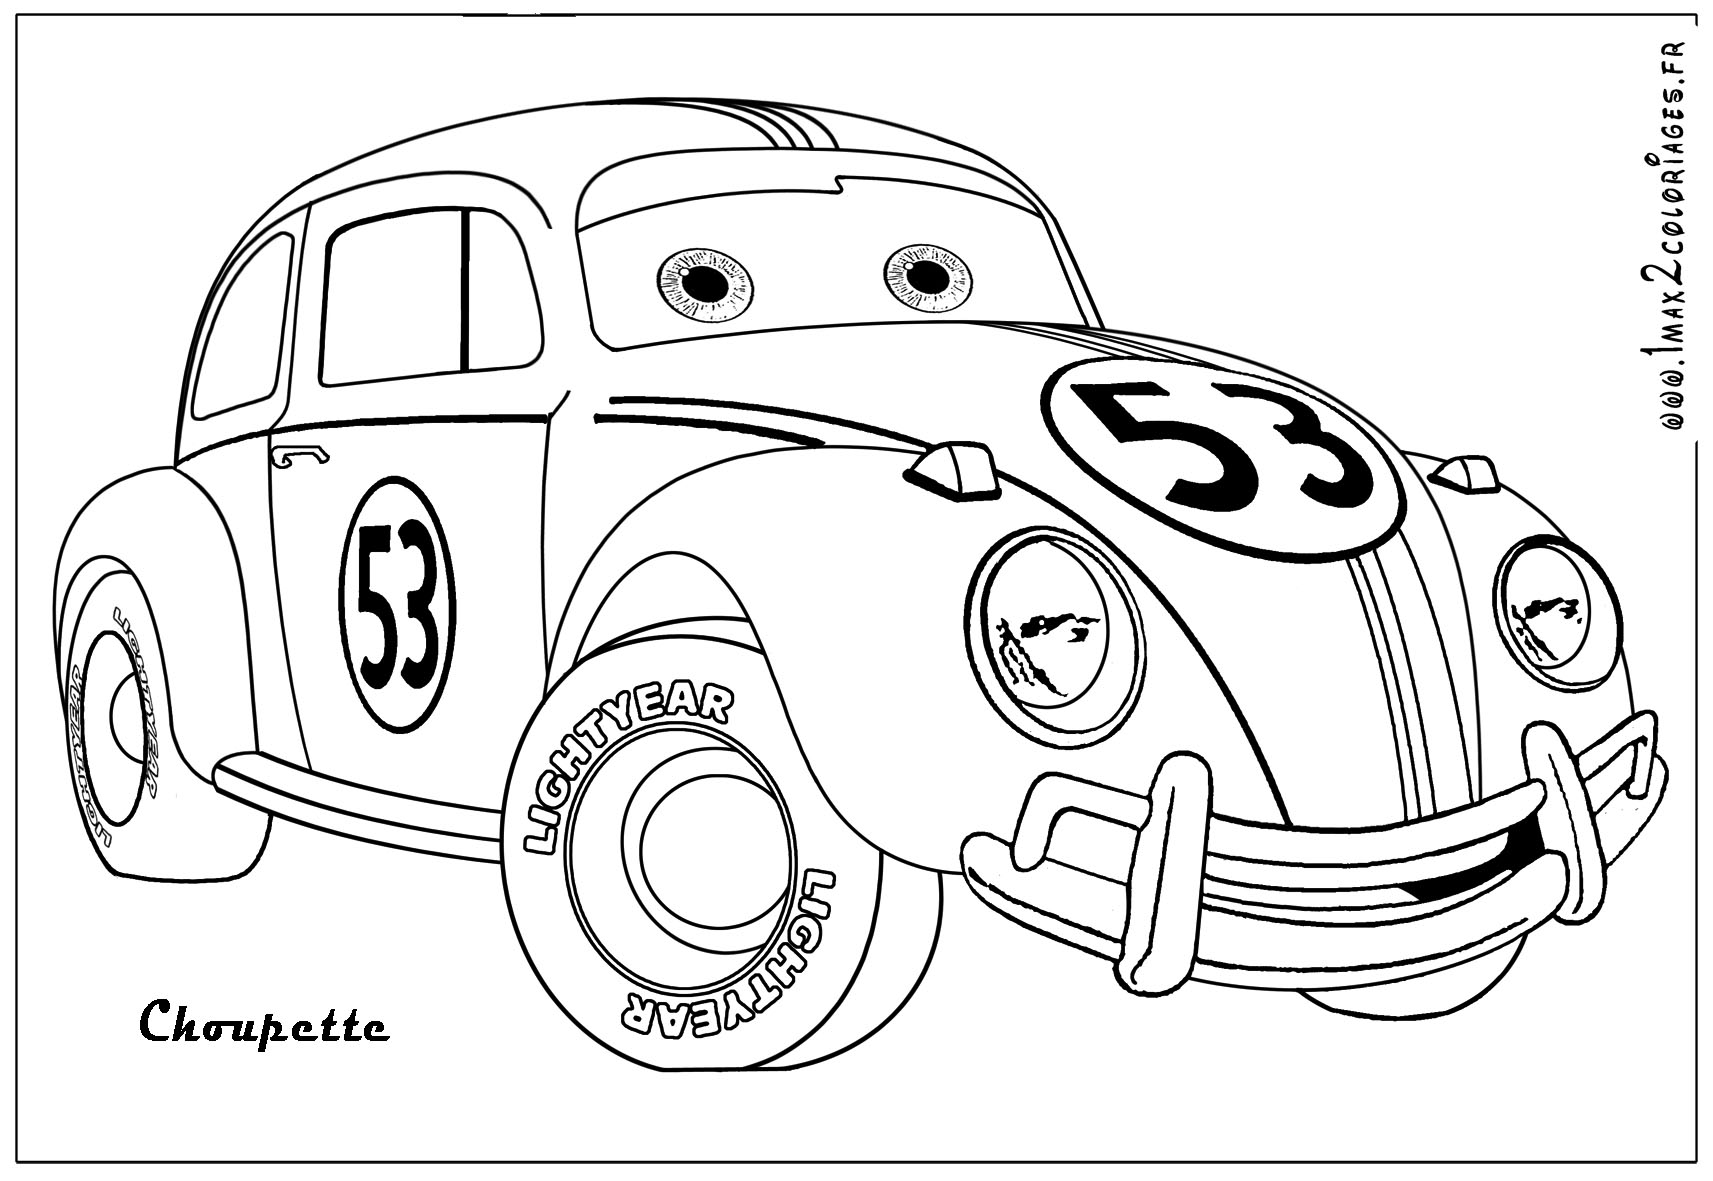 Herbie Car Coloring Pages : Herbie the coloring pages